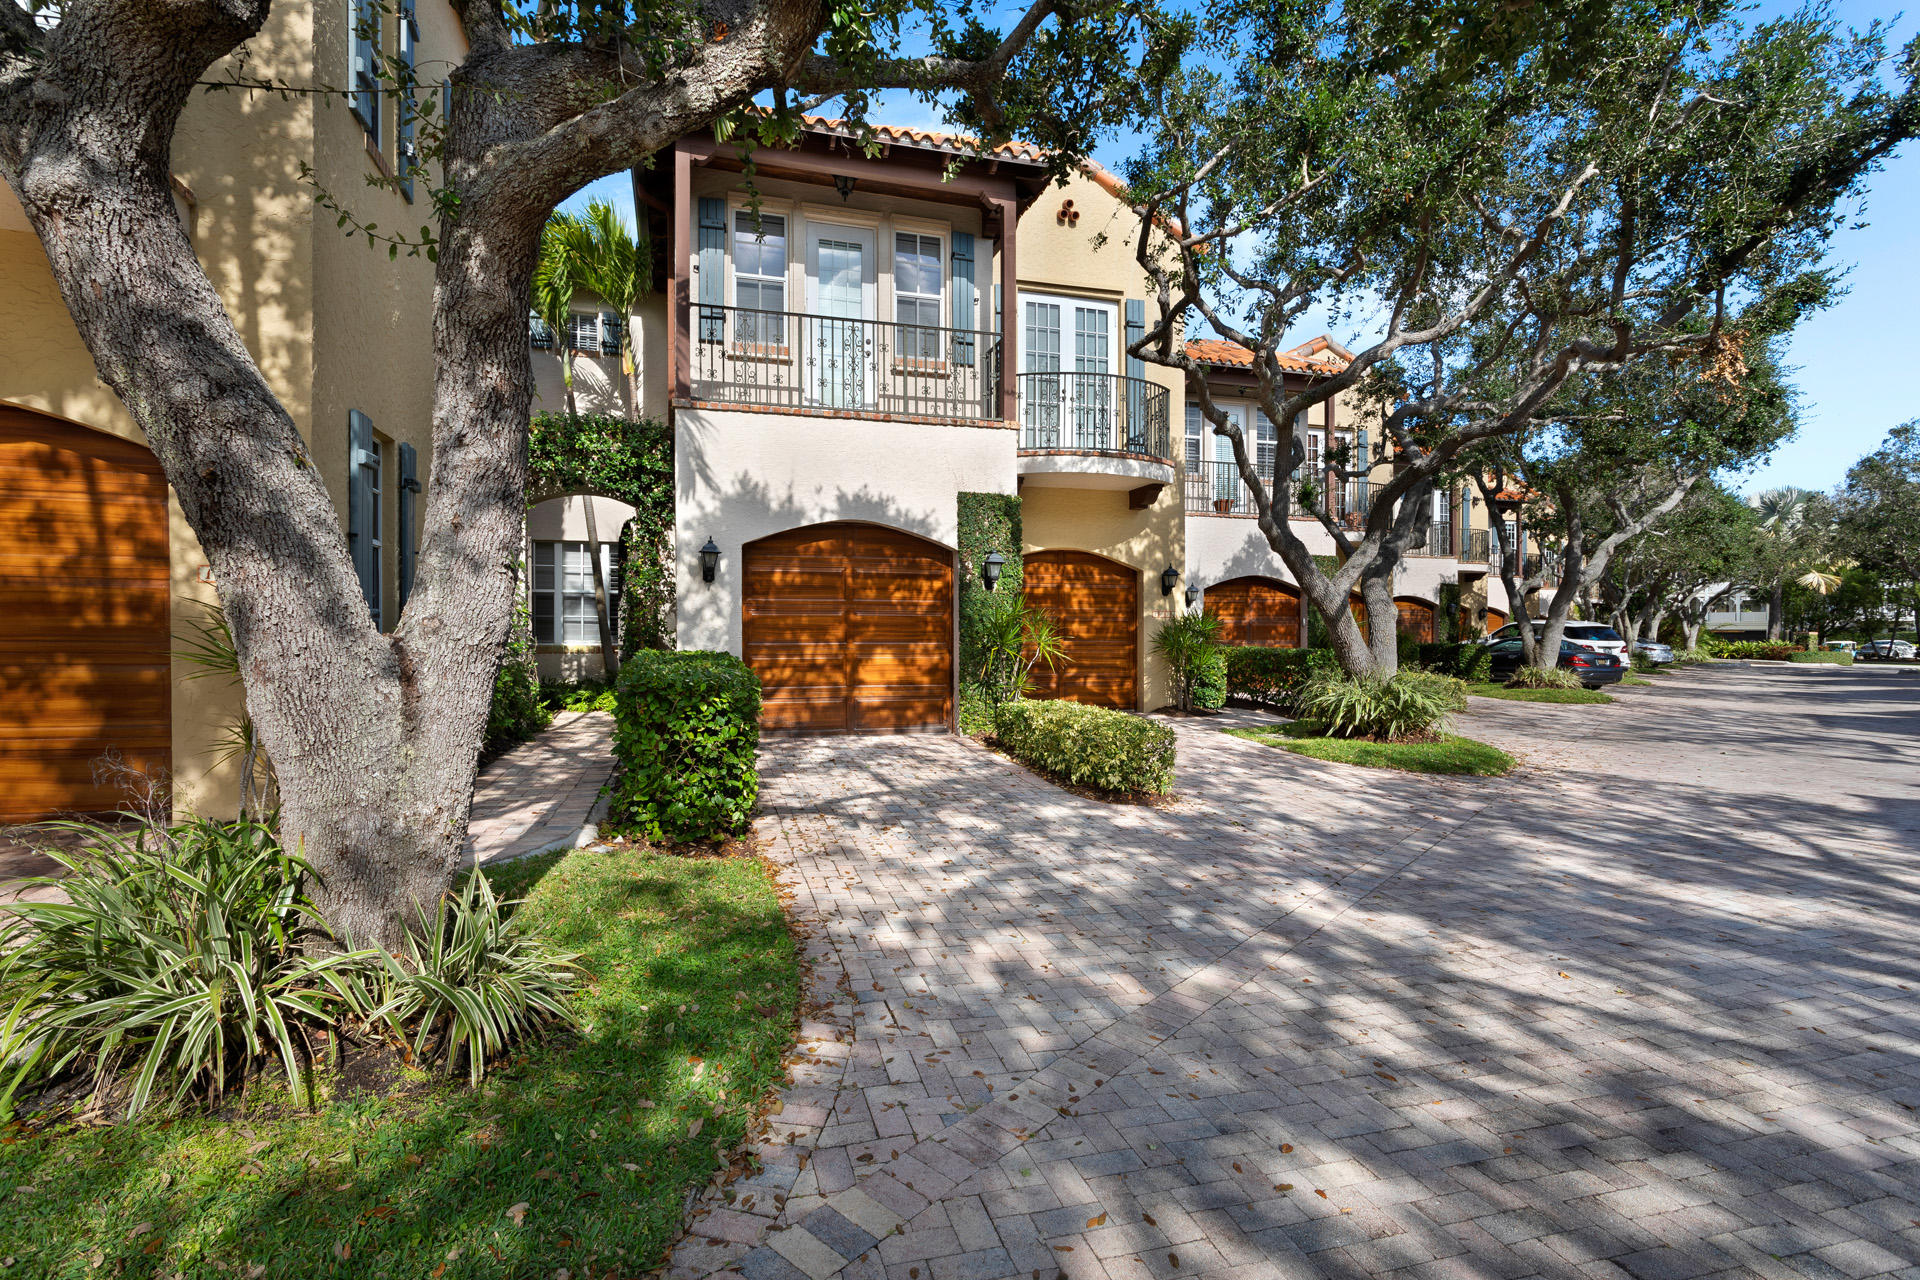 Home for sale in Coralina Village Delray Beach Florida